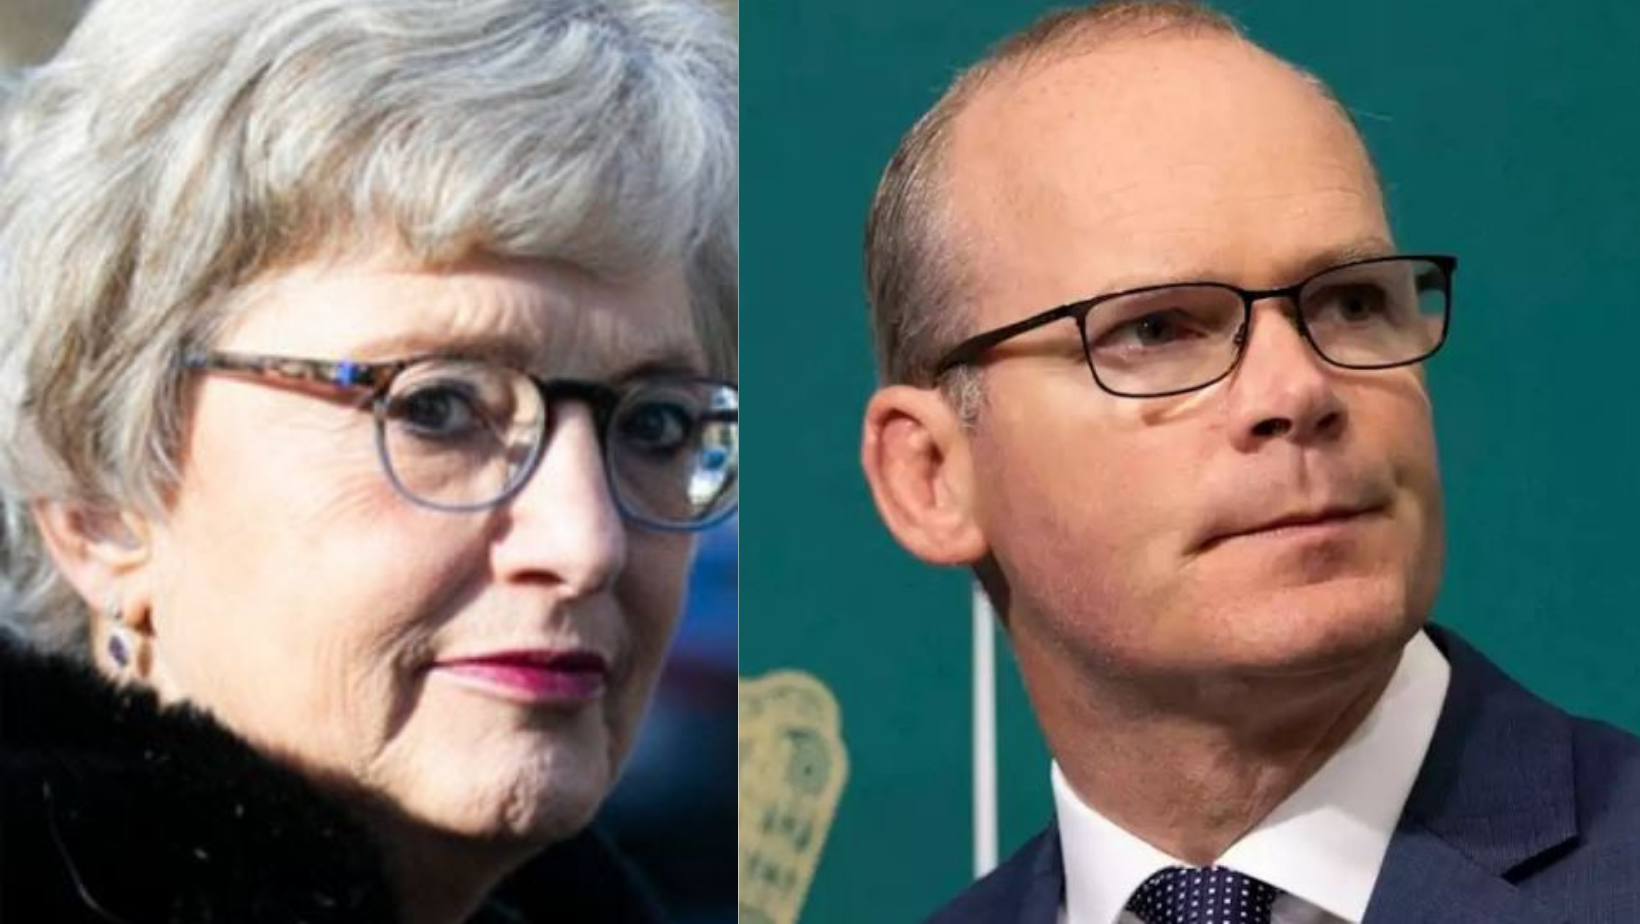 10.09.2021 – Zappone controversy: pushing taxpayer funded abortions abroad featured in discussions about 'Special Envoy' role